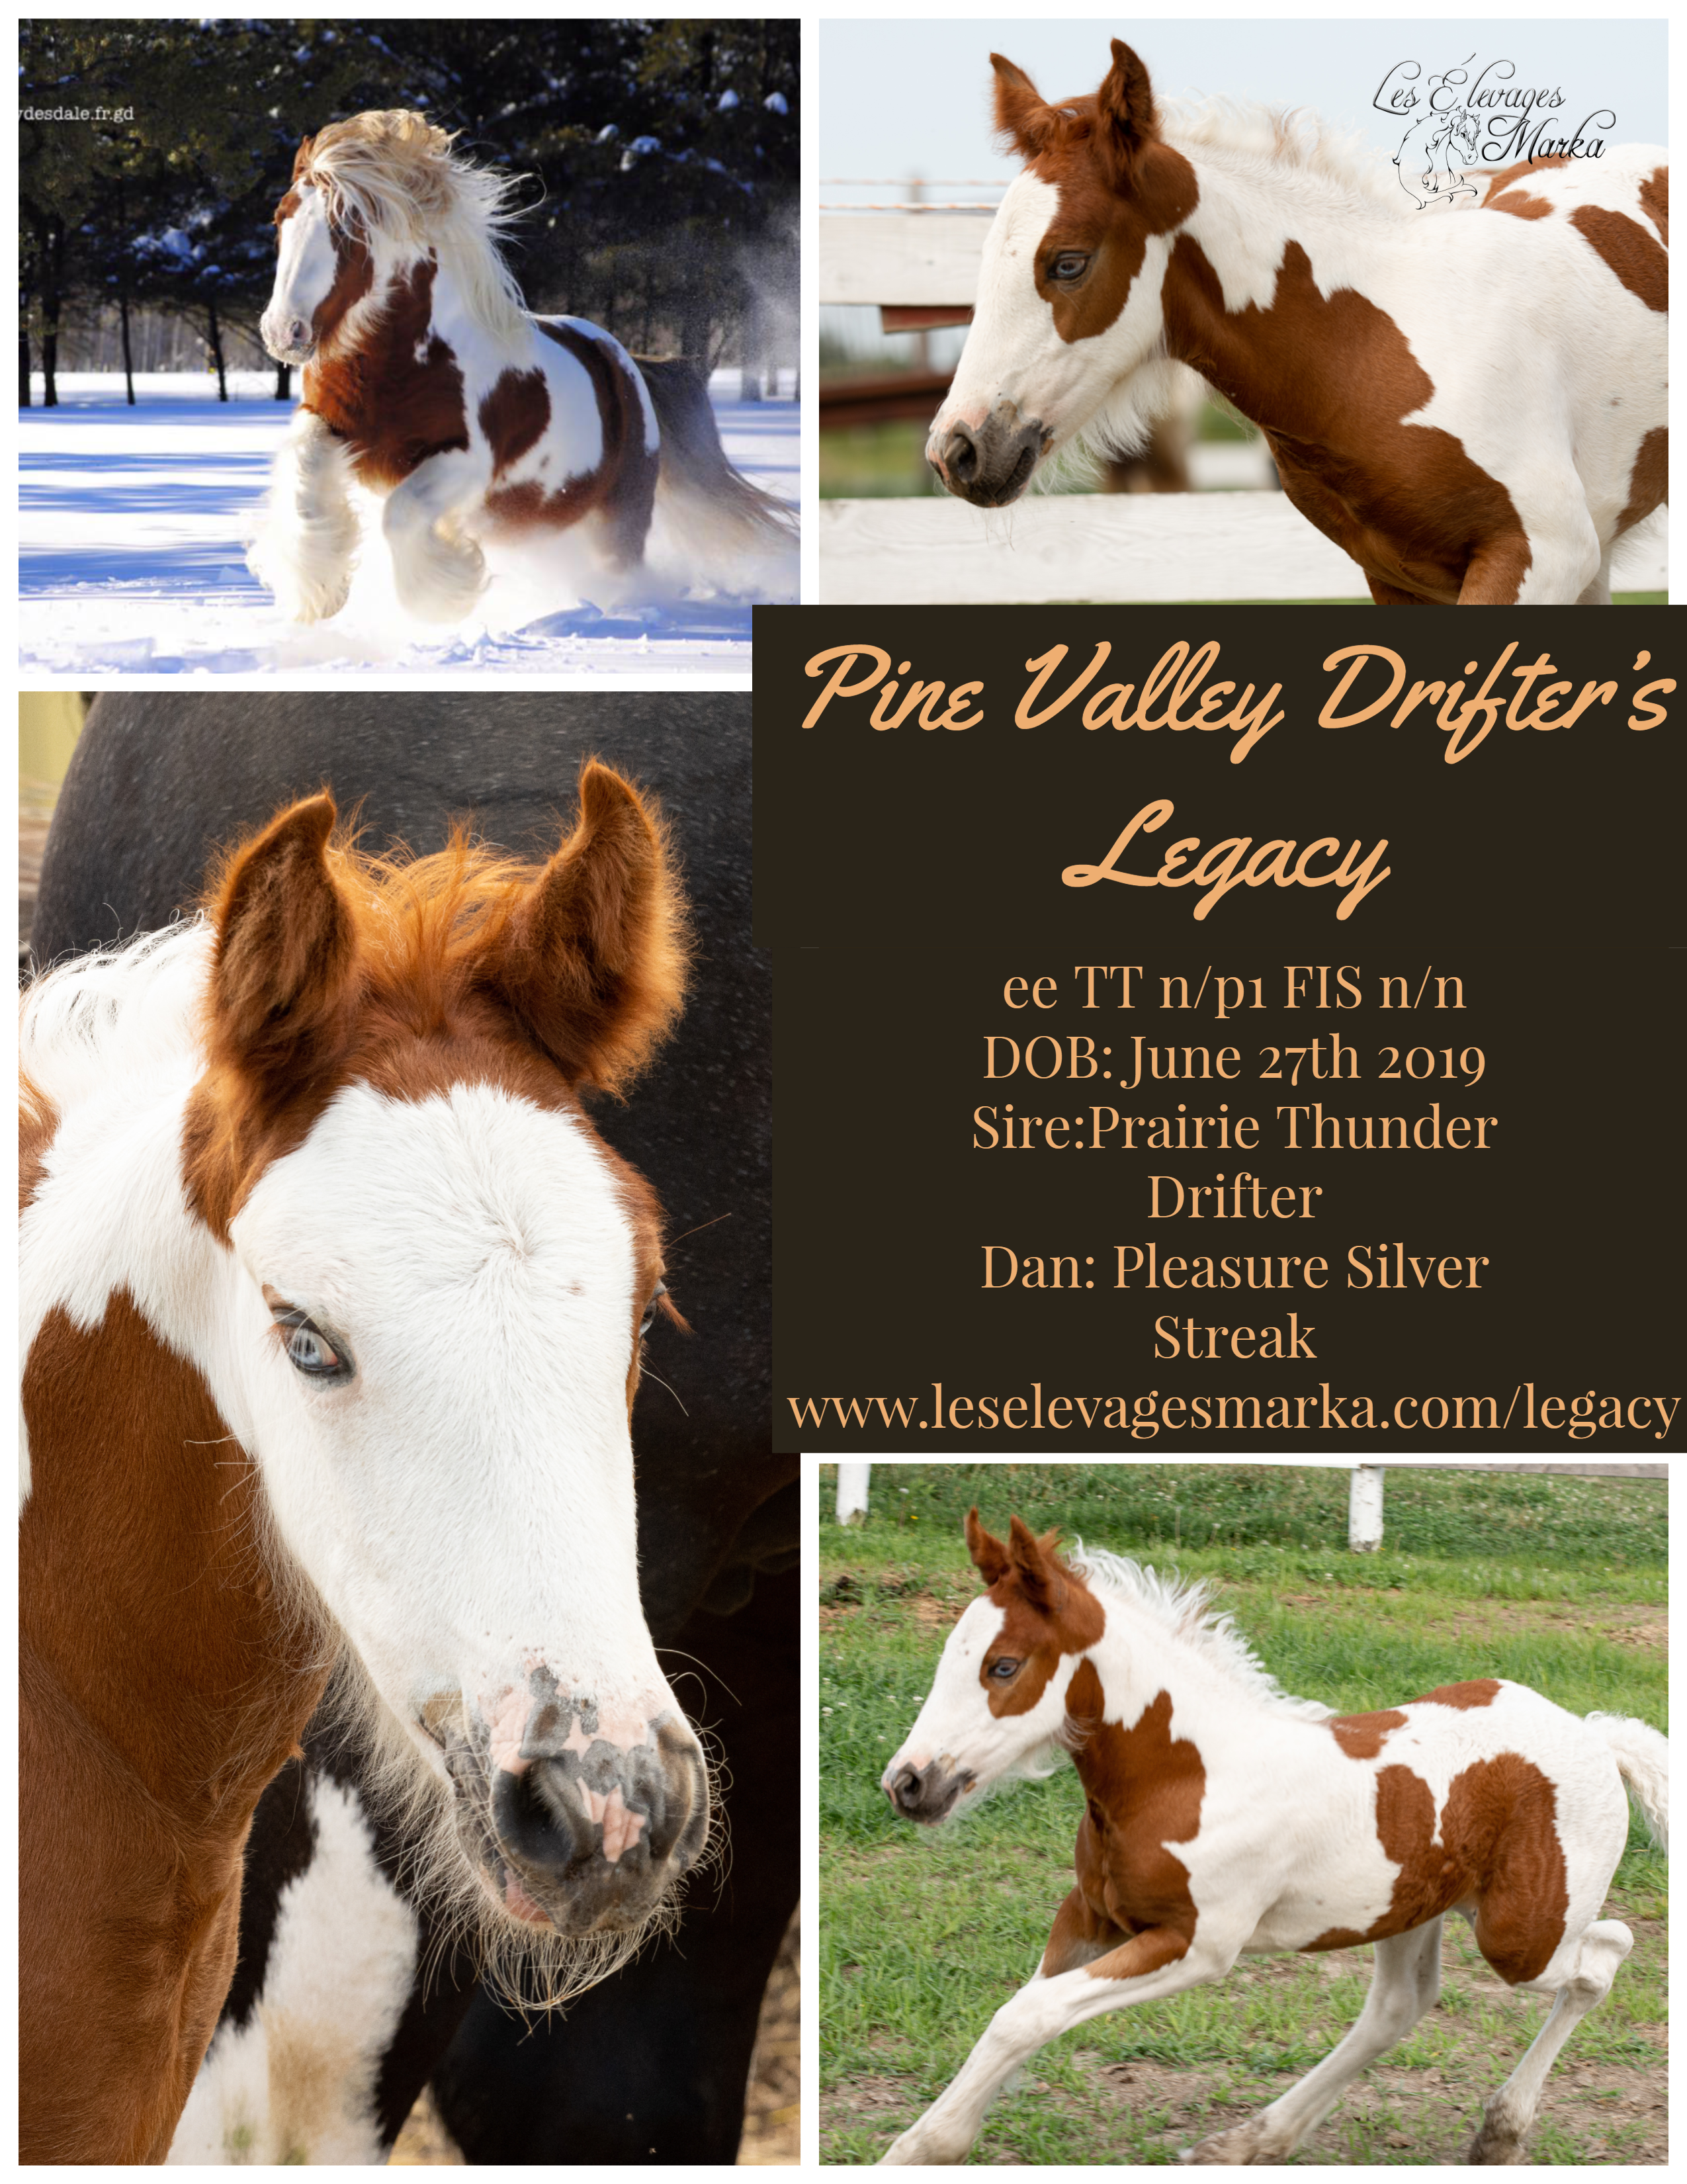 Pine Valley Drifter's Legacy